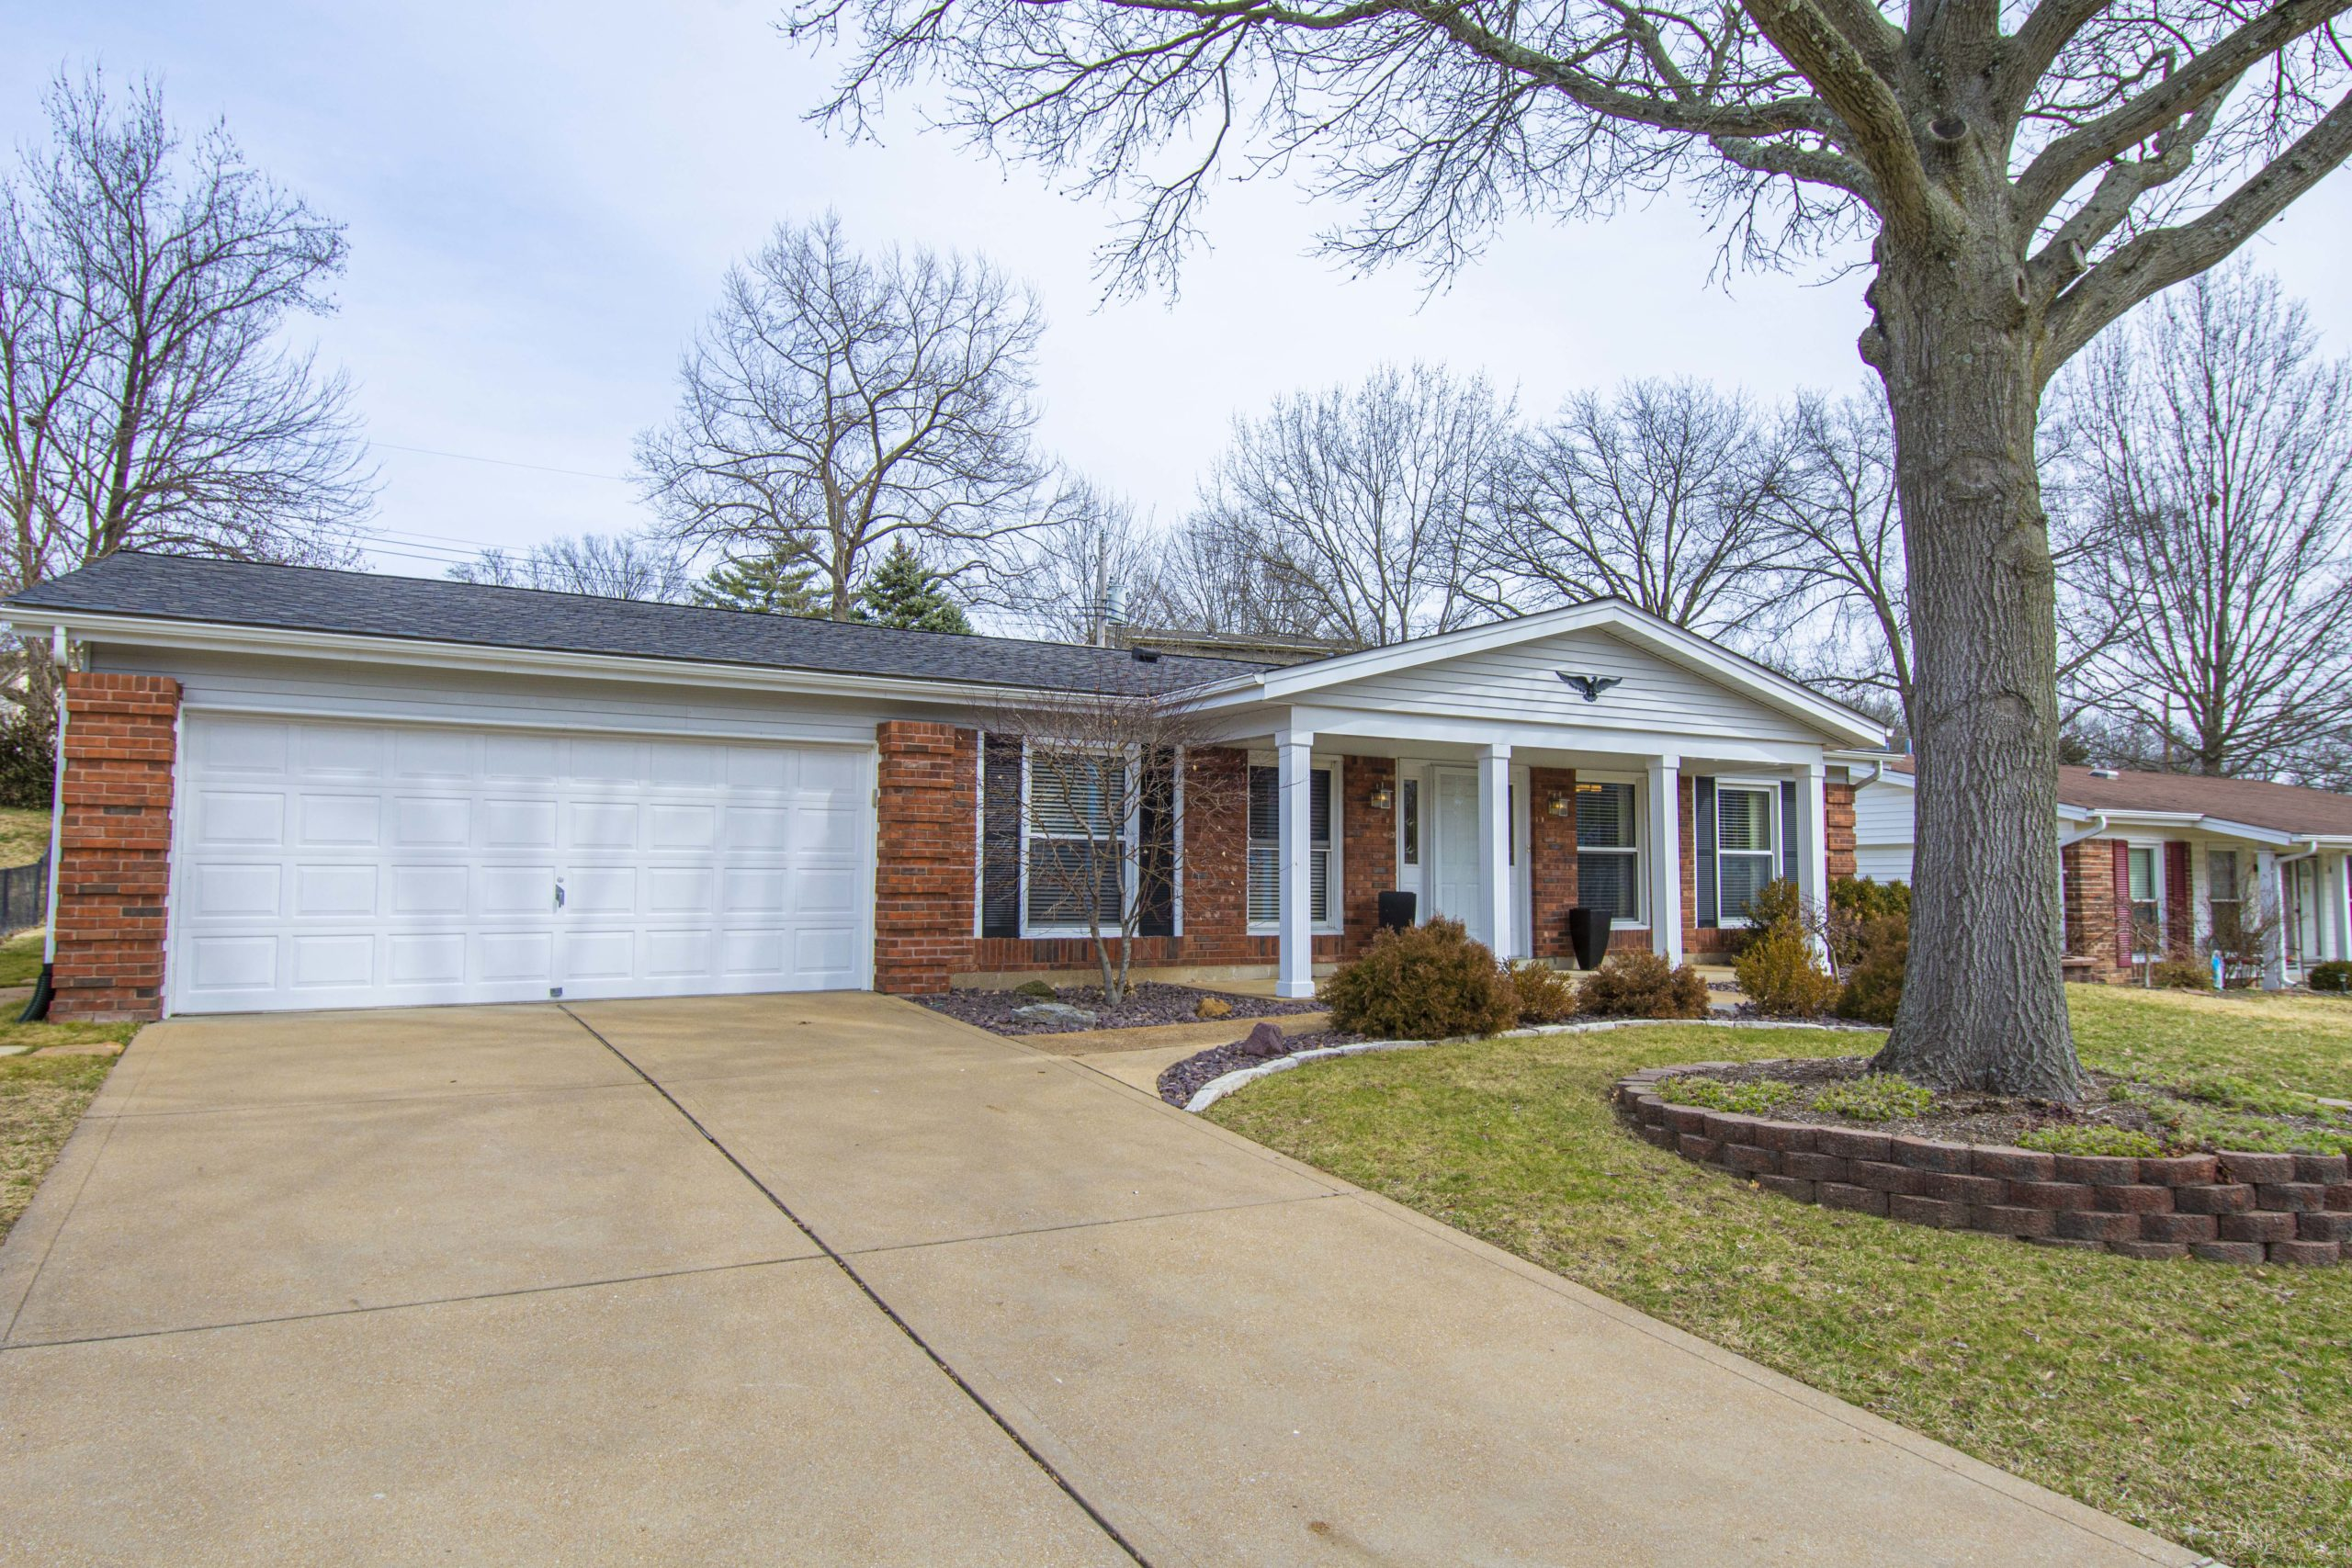 4817 Bankfield Court St Louis MO 63128 / Towne South Subdivision